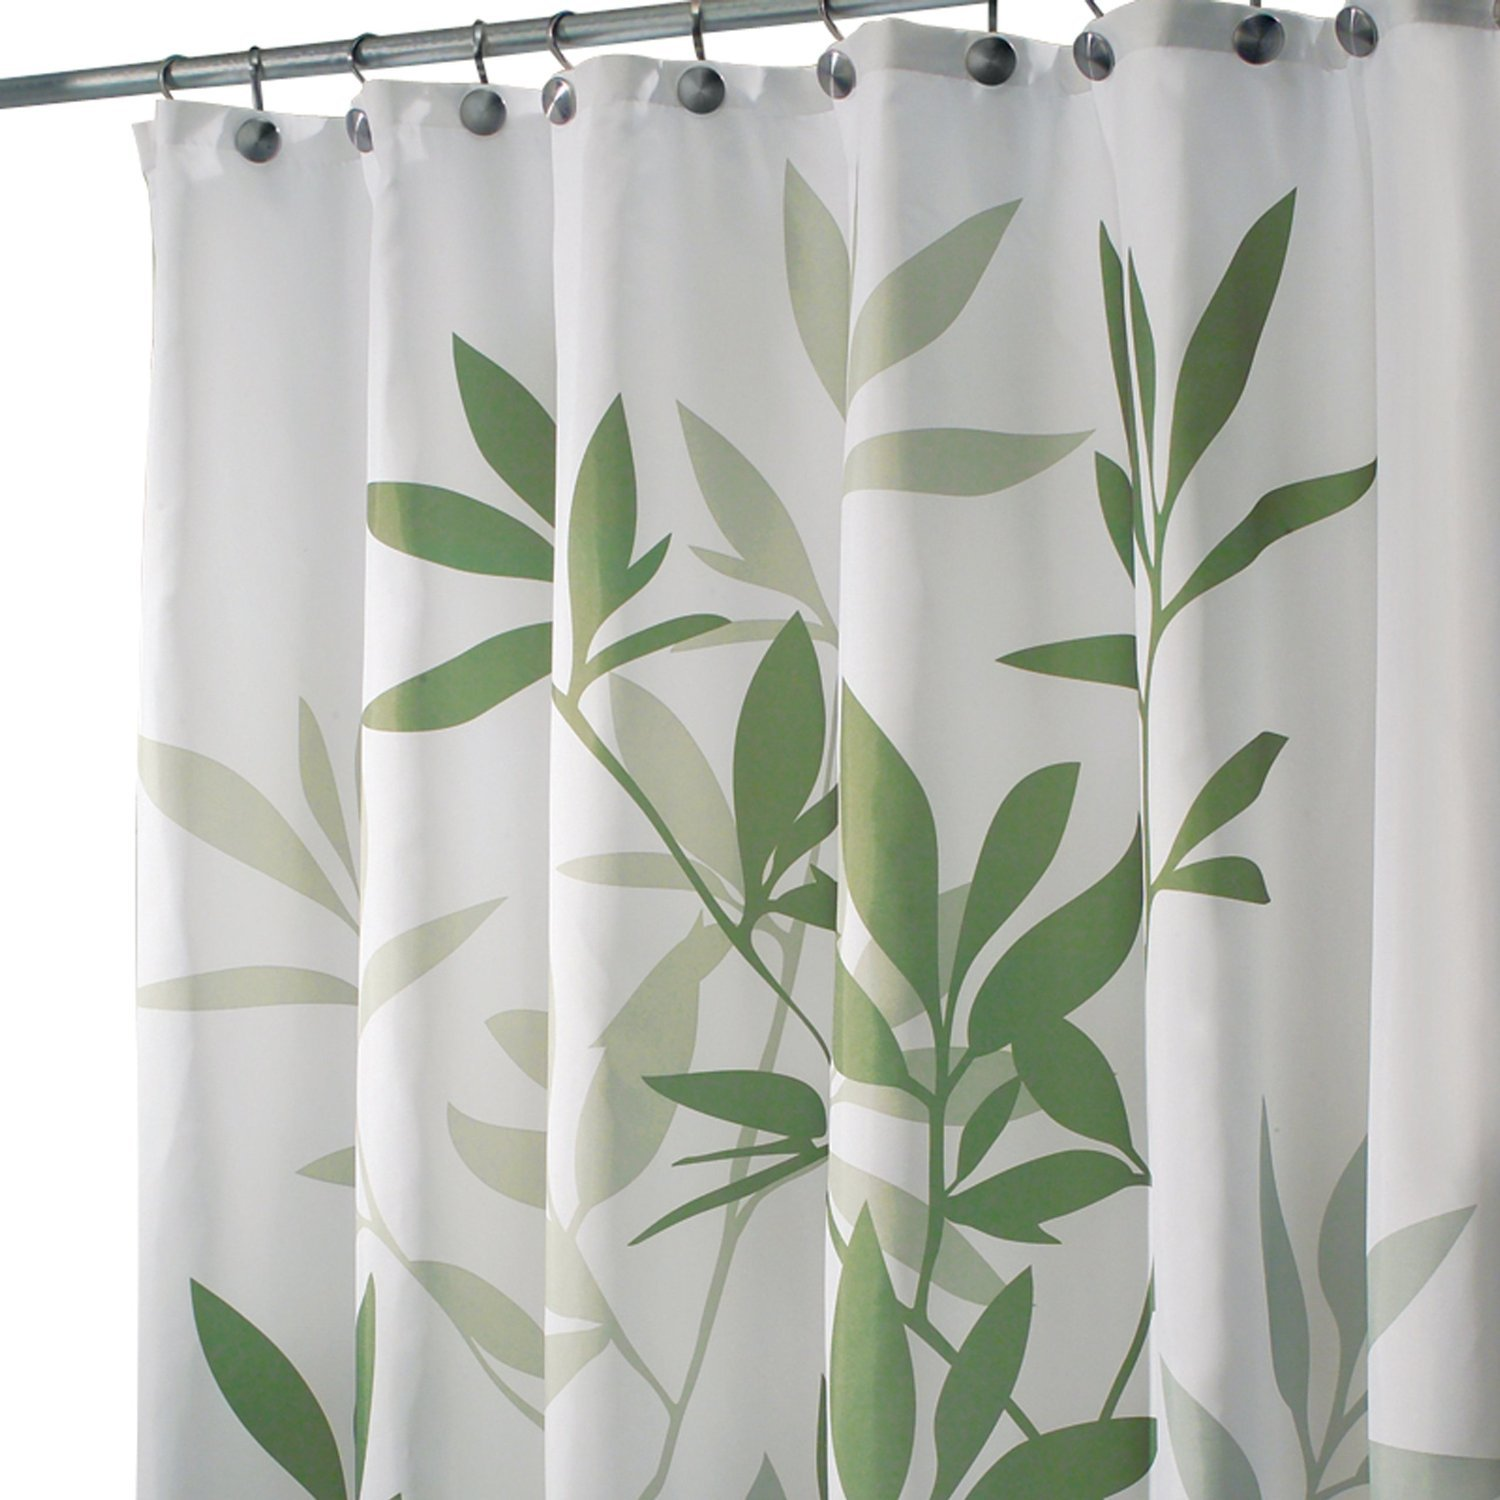 Amazon InterDesign 35634 Leaves Fabric Shower Curtain